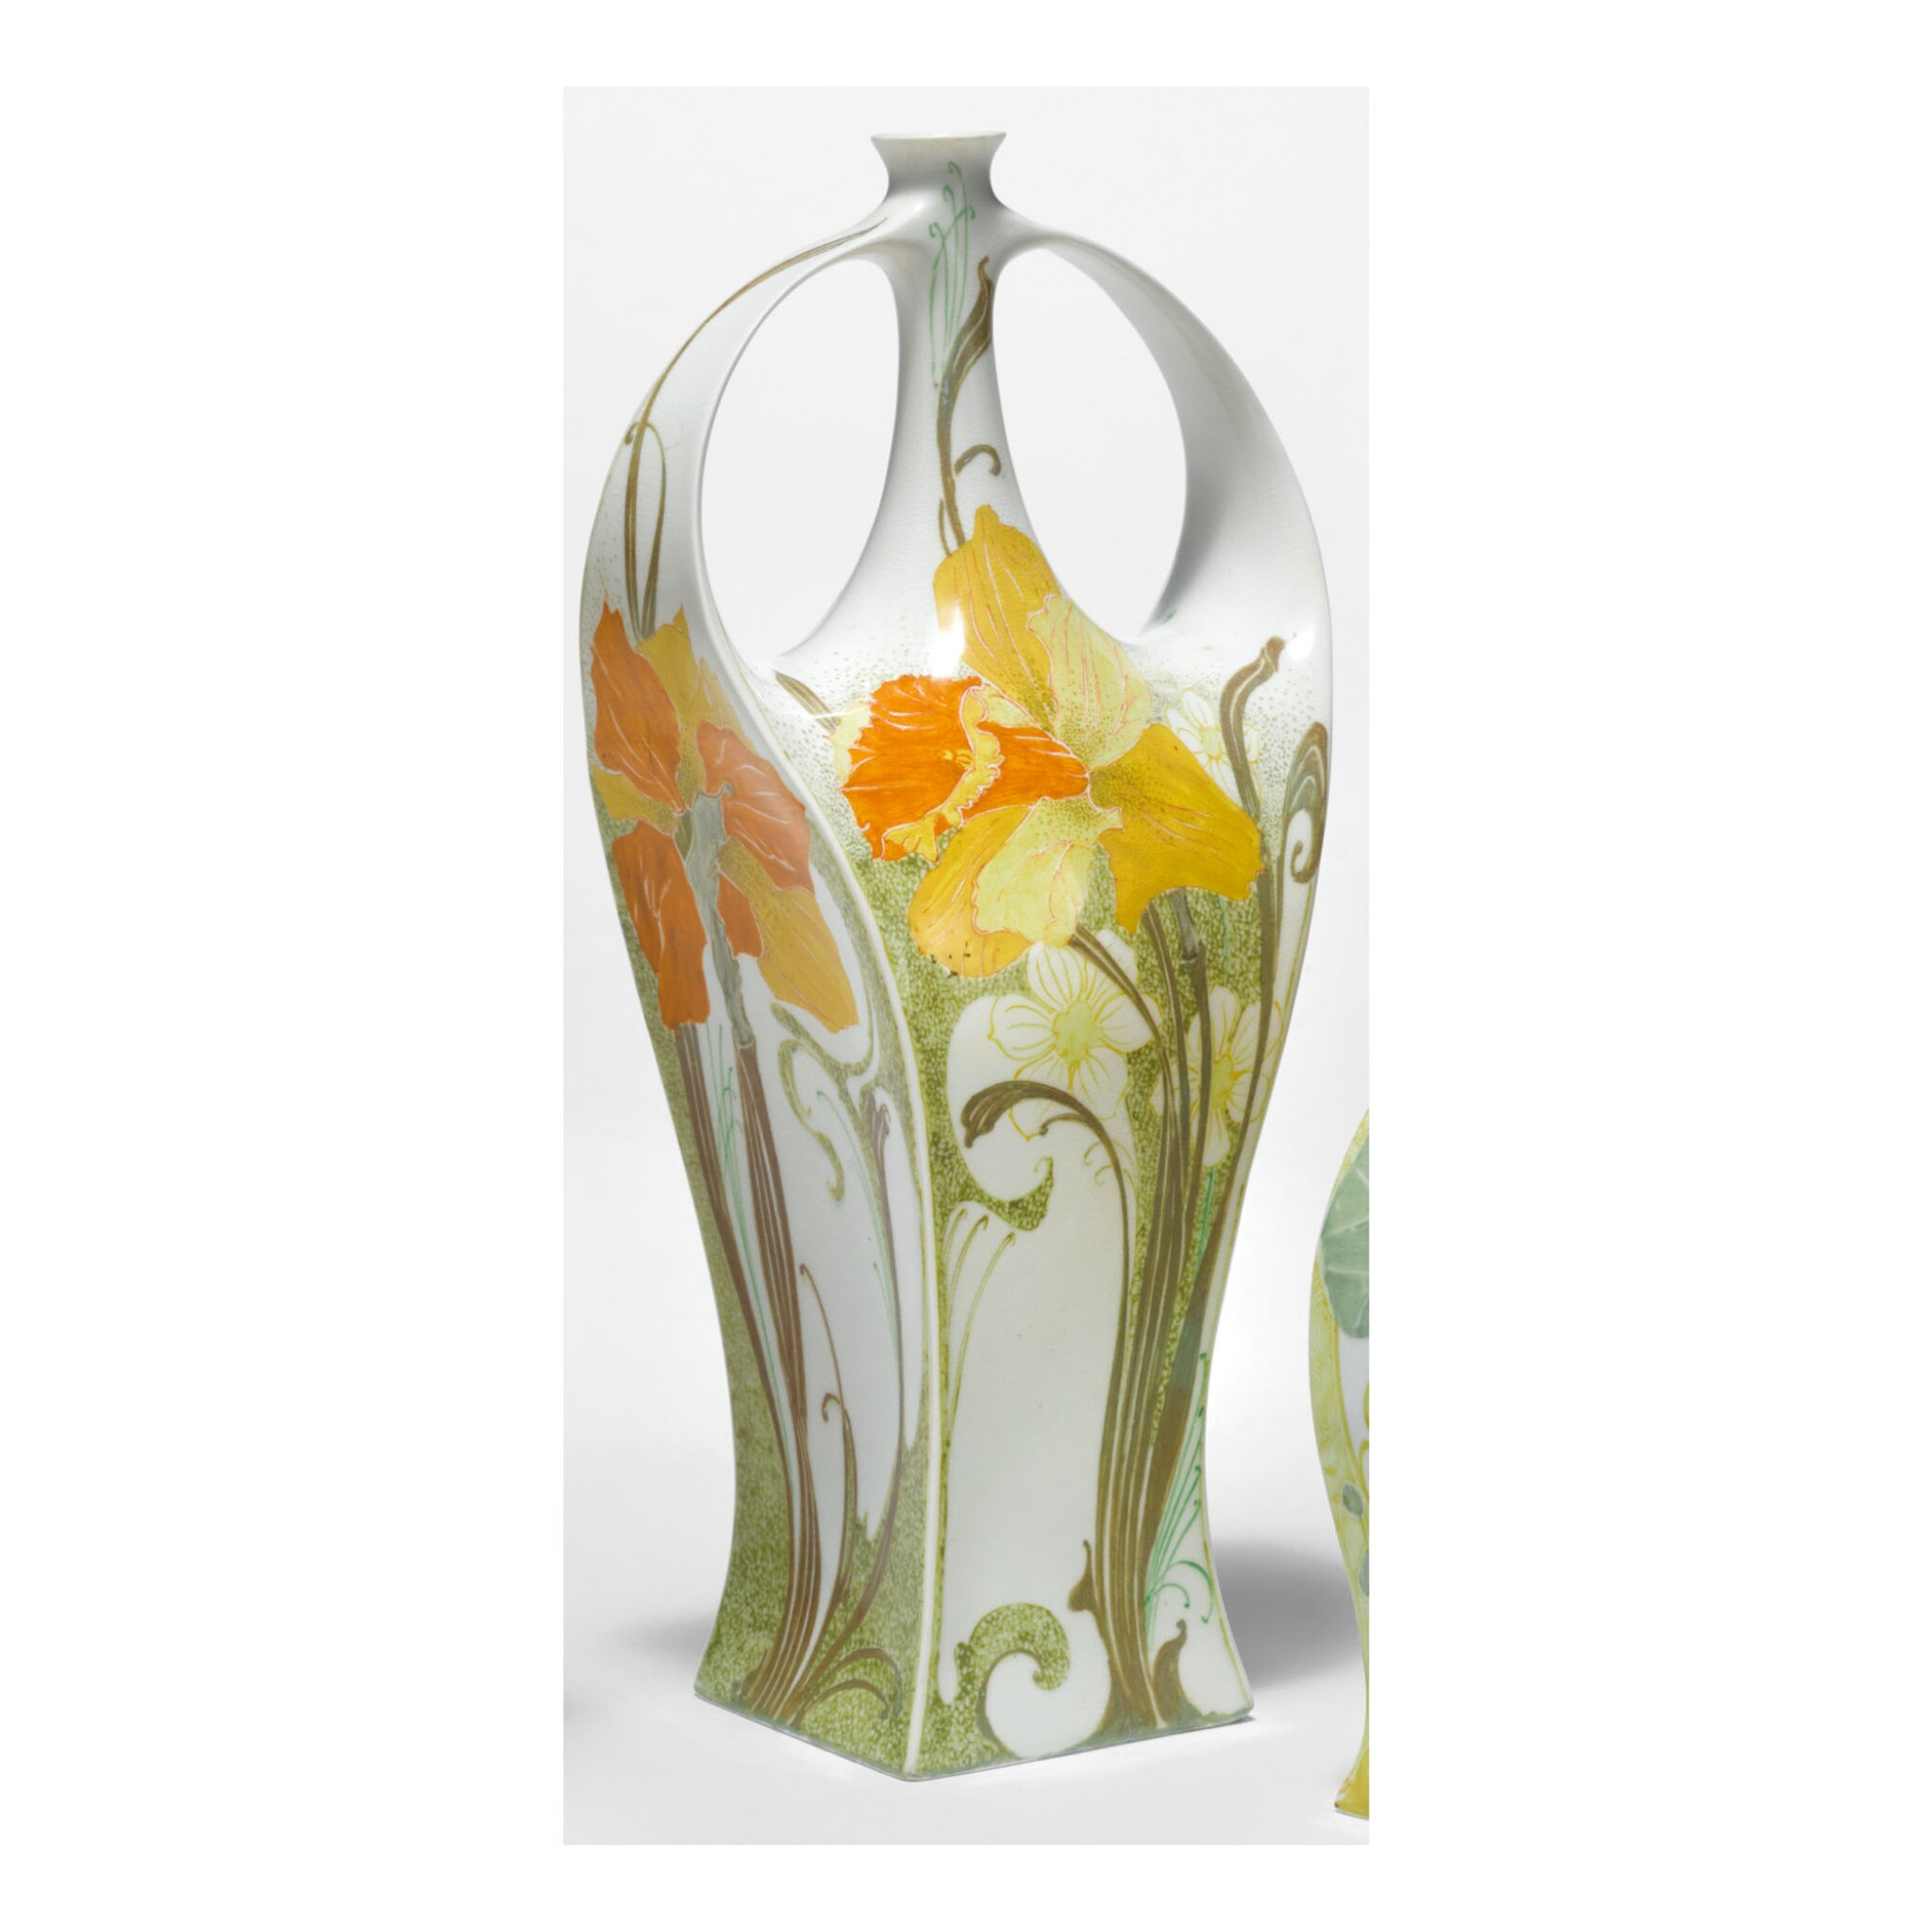 """View full screen - View 1 of Lot 123. ROZENBURG 